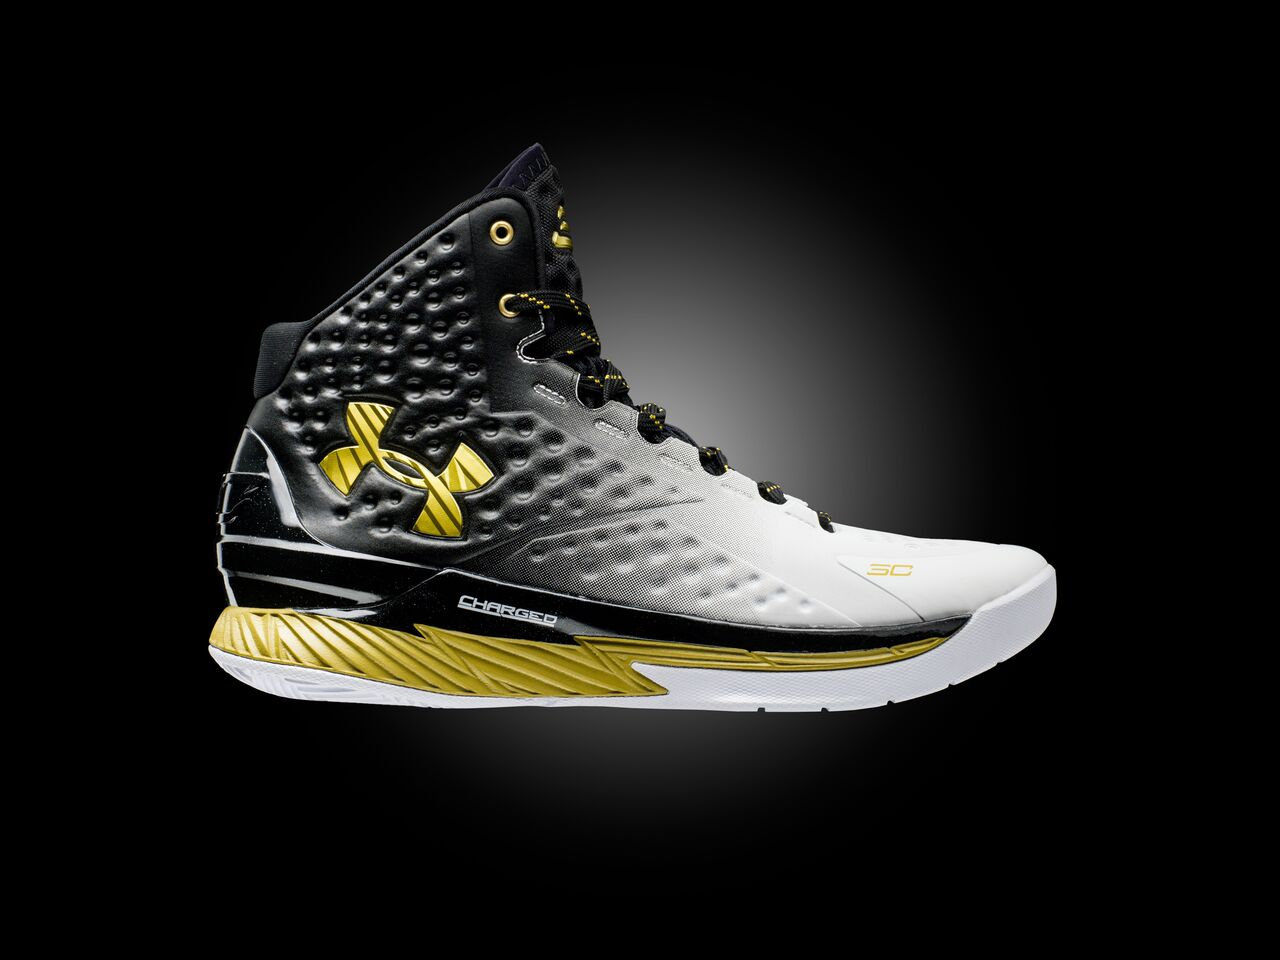 stephen curry shoes 2014 wwwimgkidcom the image kid